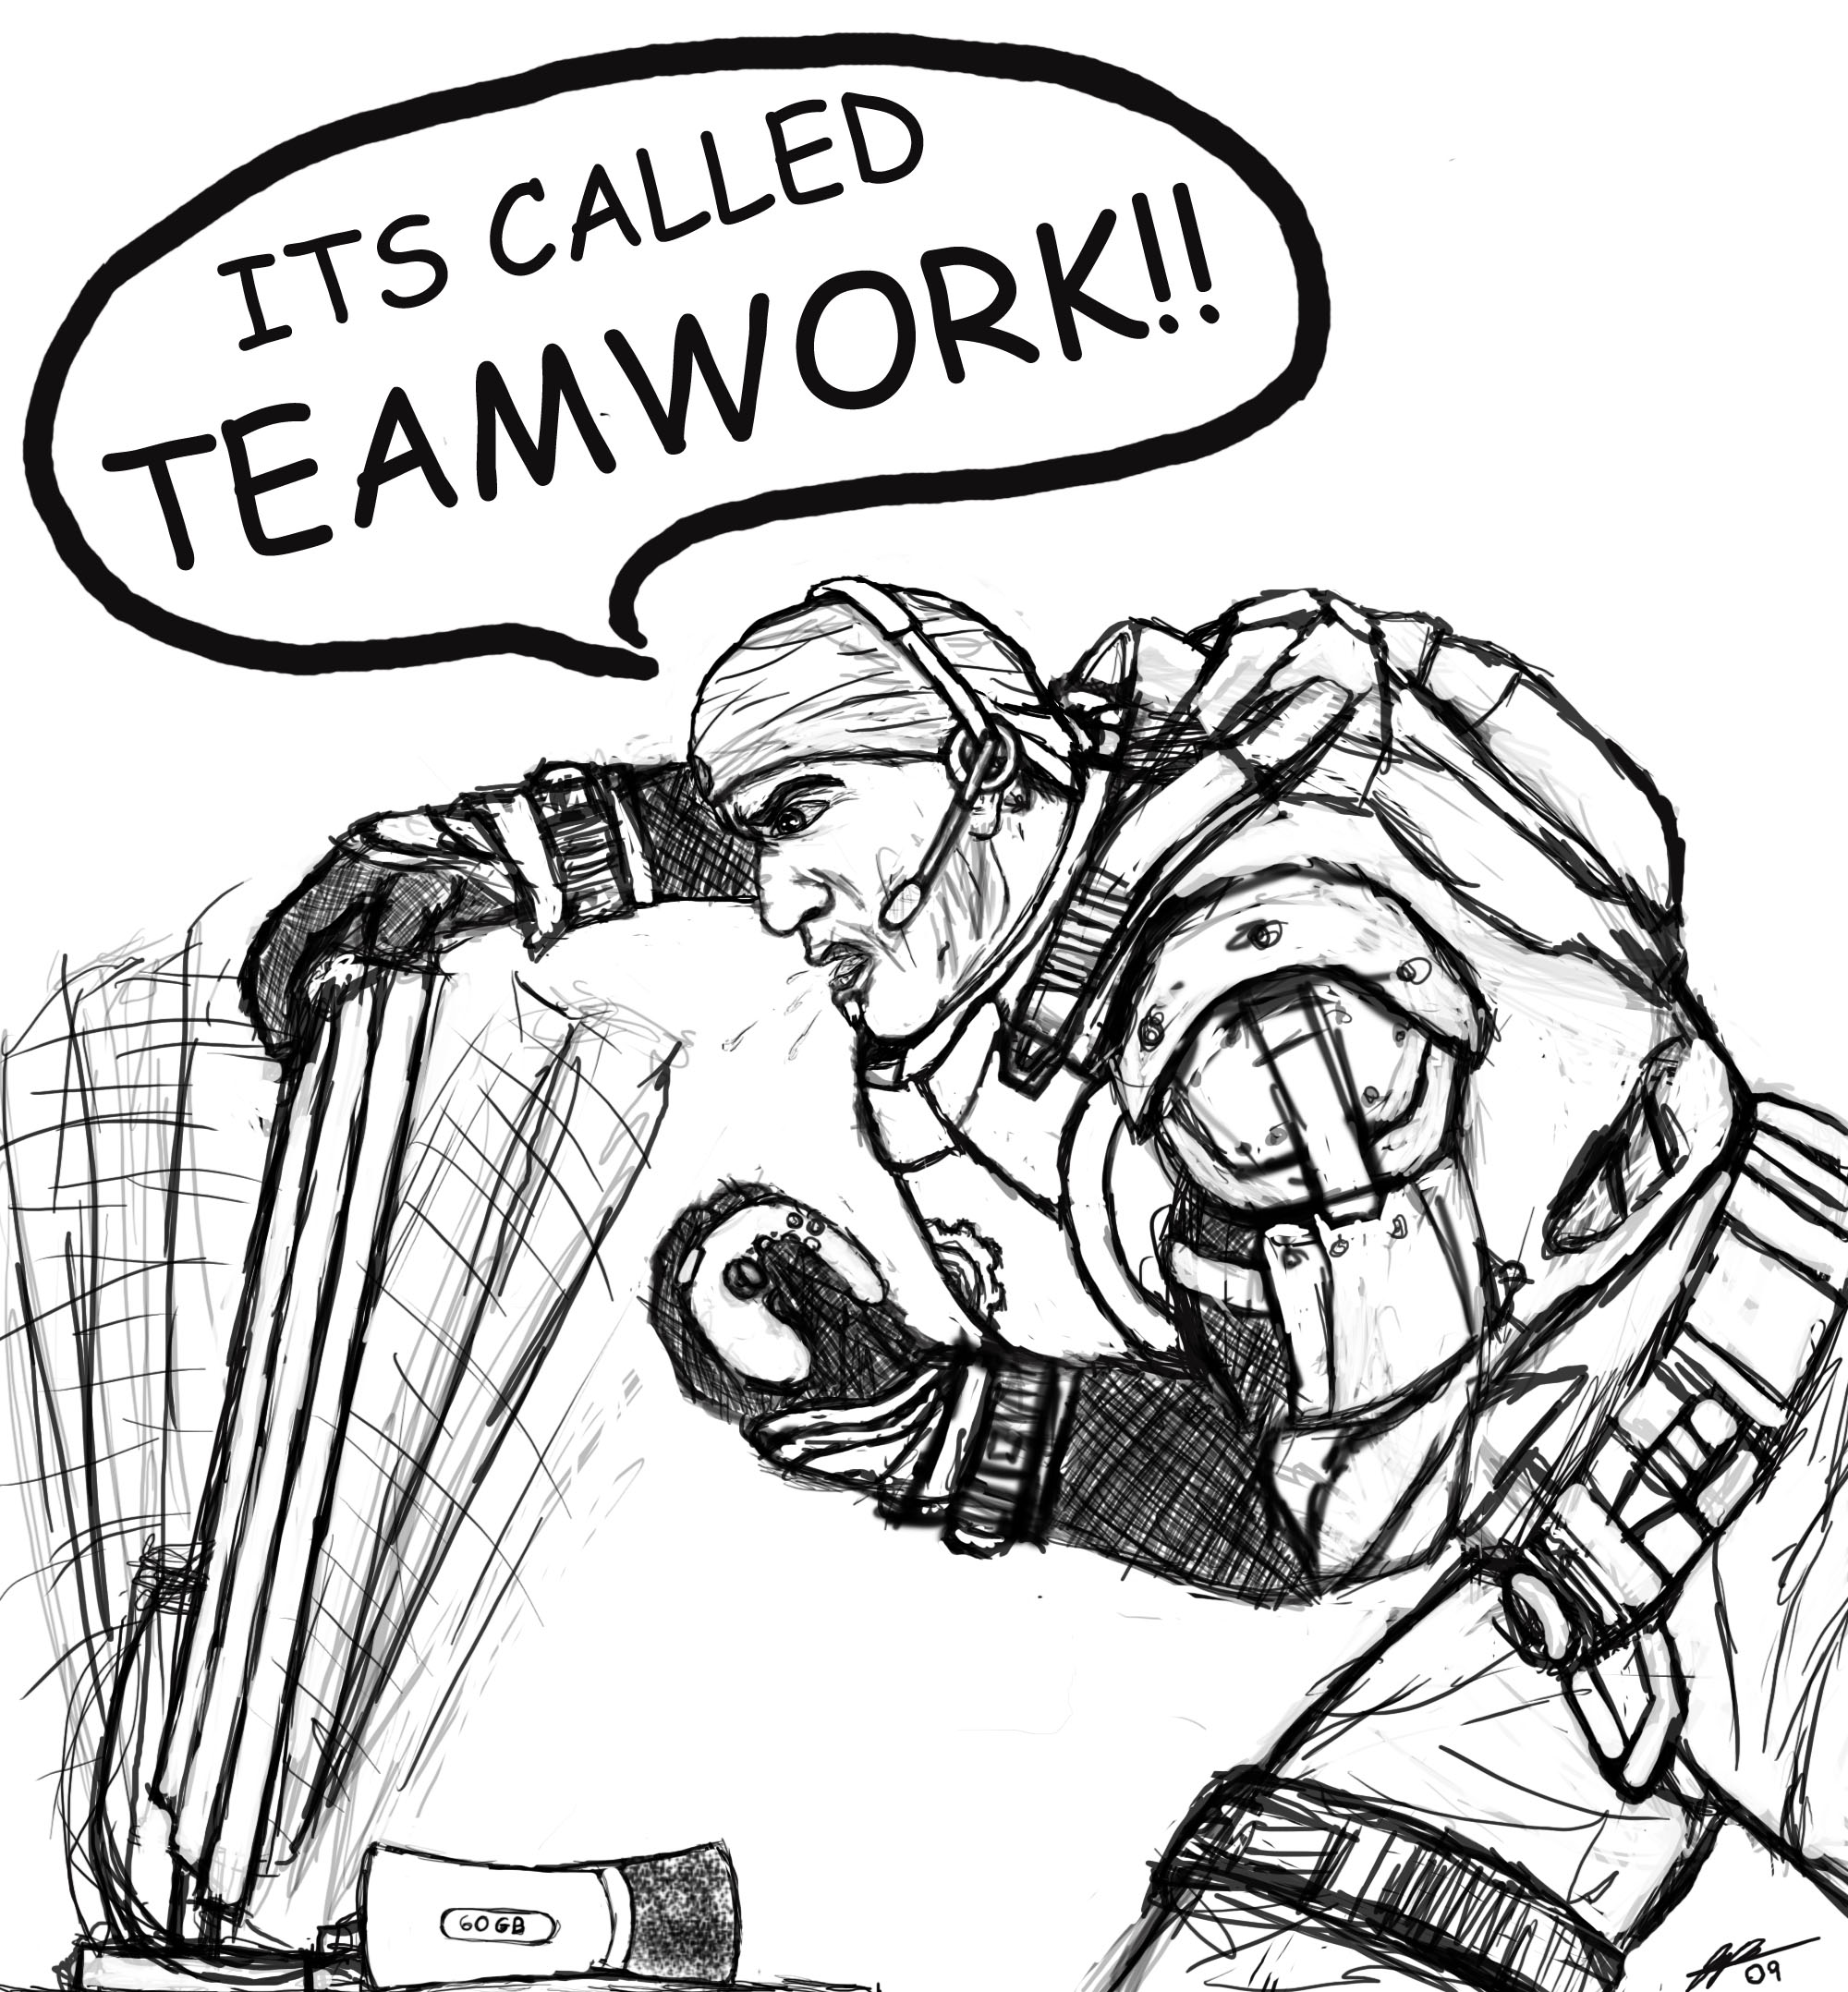 Is There A Lack Of Communication And Teamwork In Online